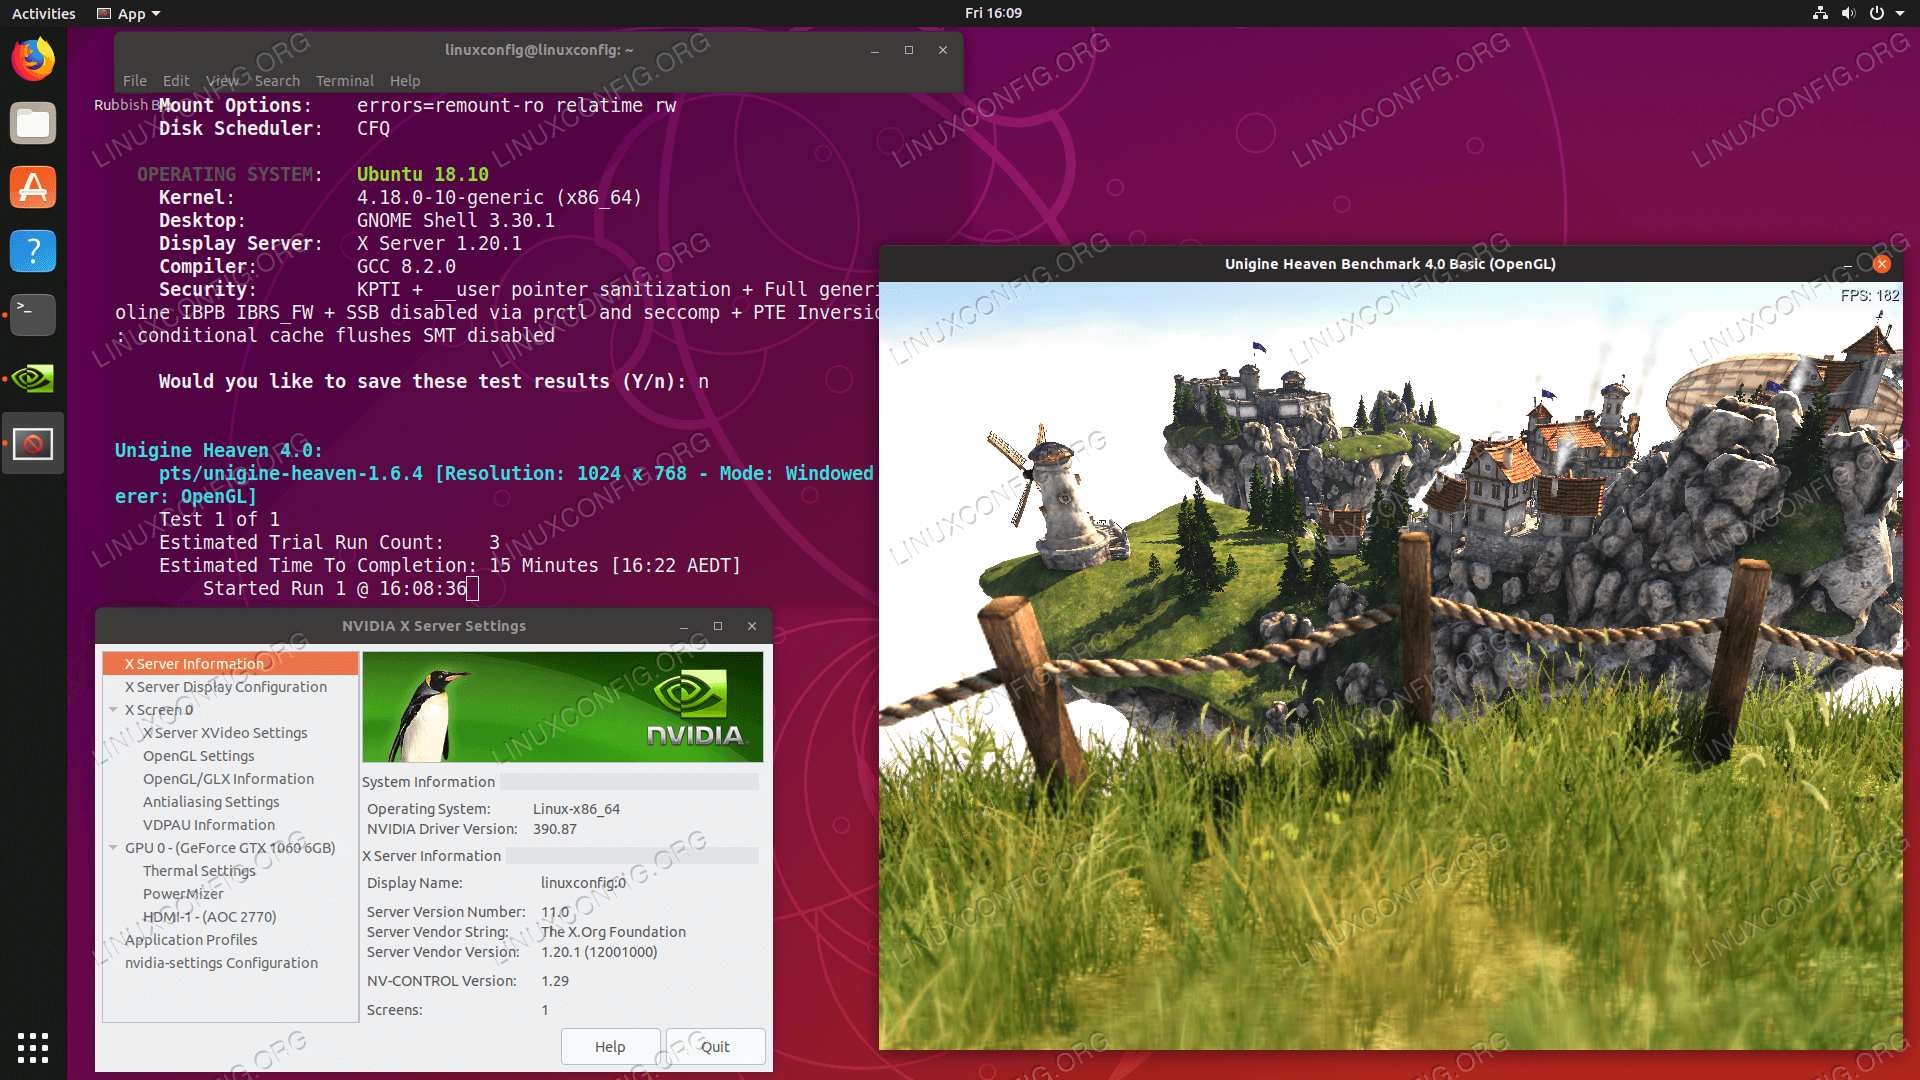 Installed NVIDIA drivers on Ubuntu 18.10 Cosmic Cuttlefish Linux